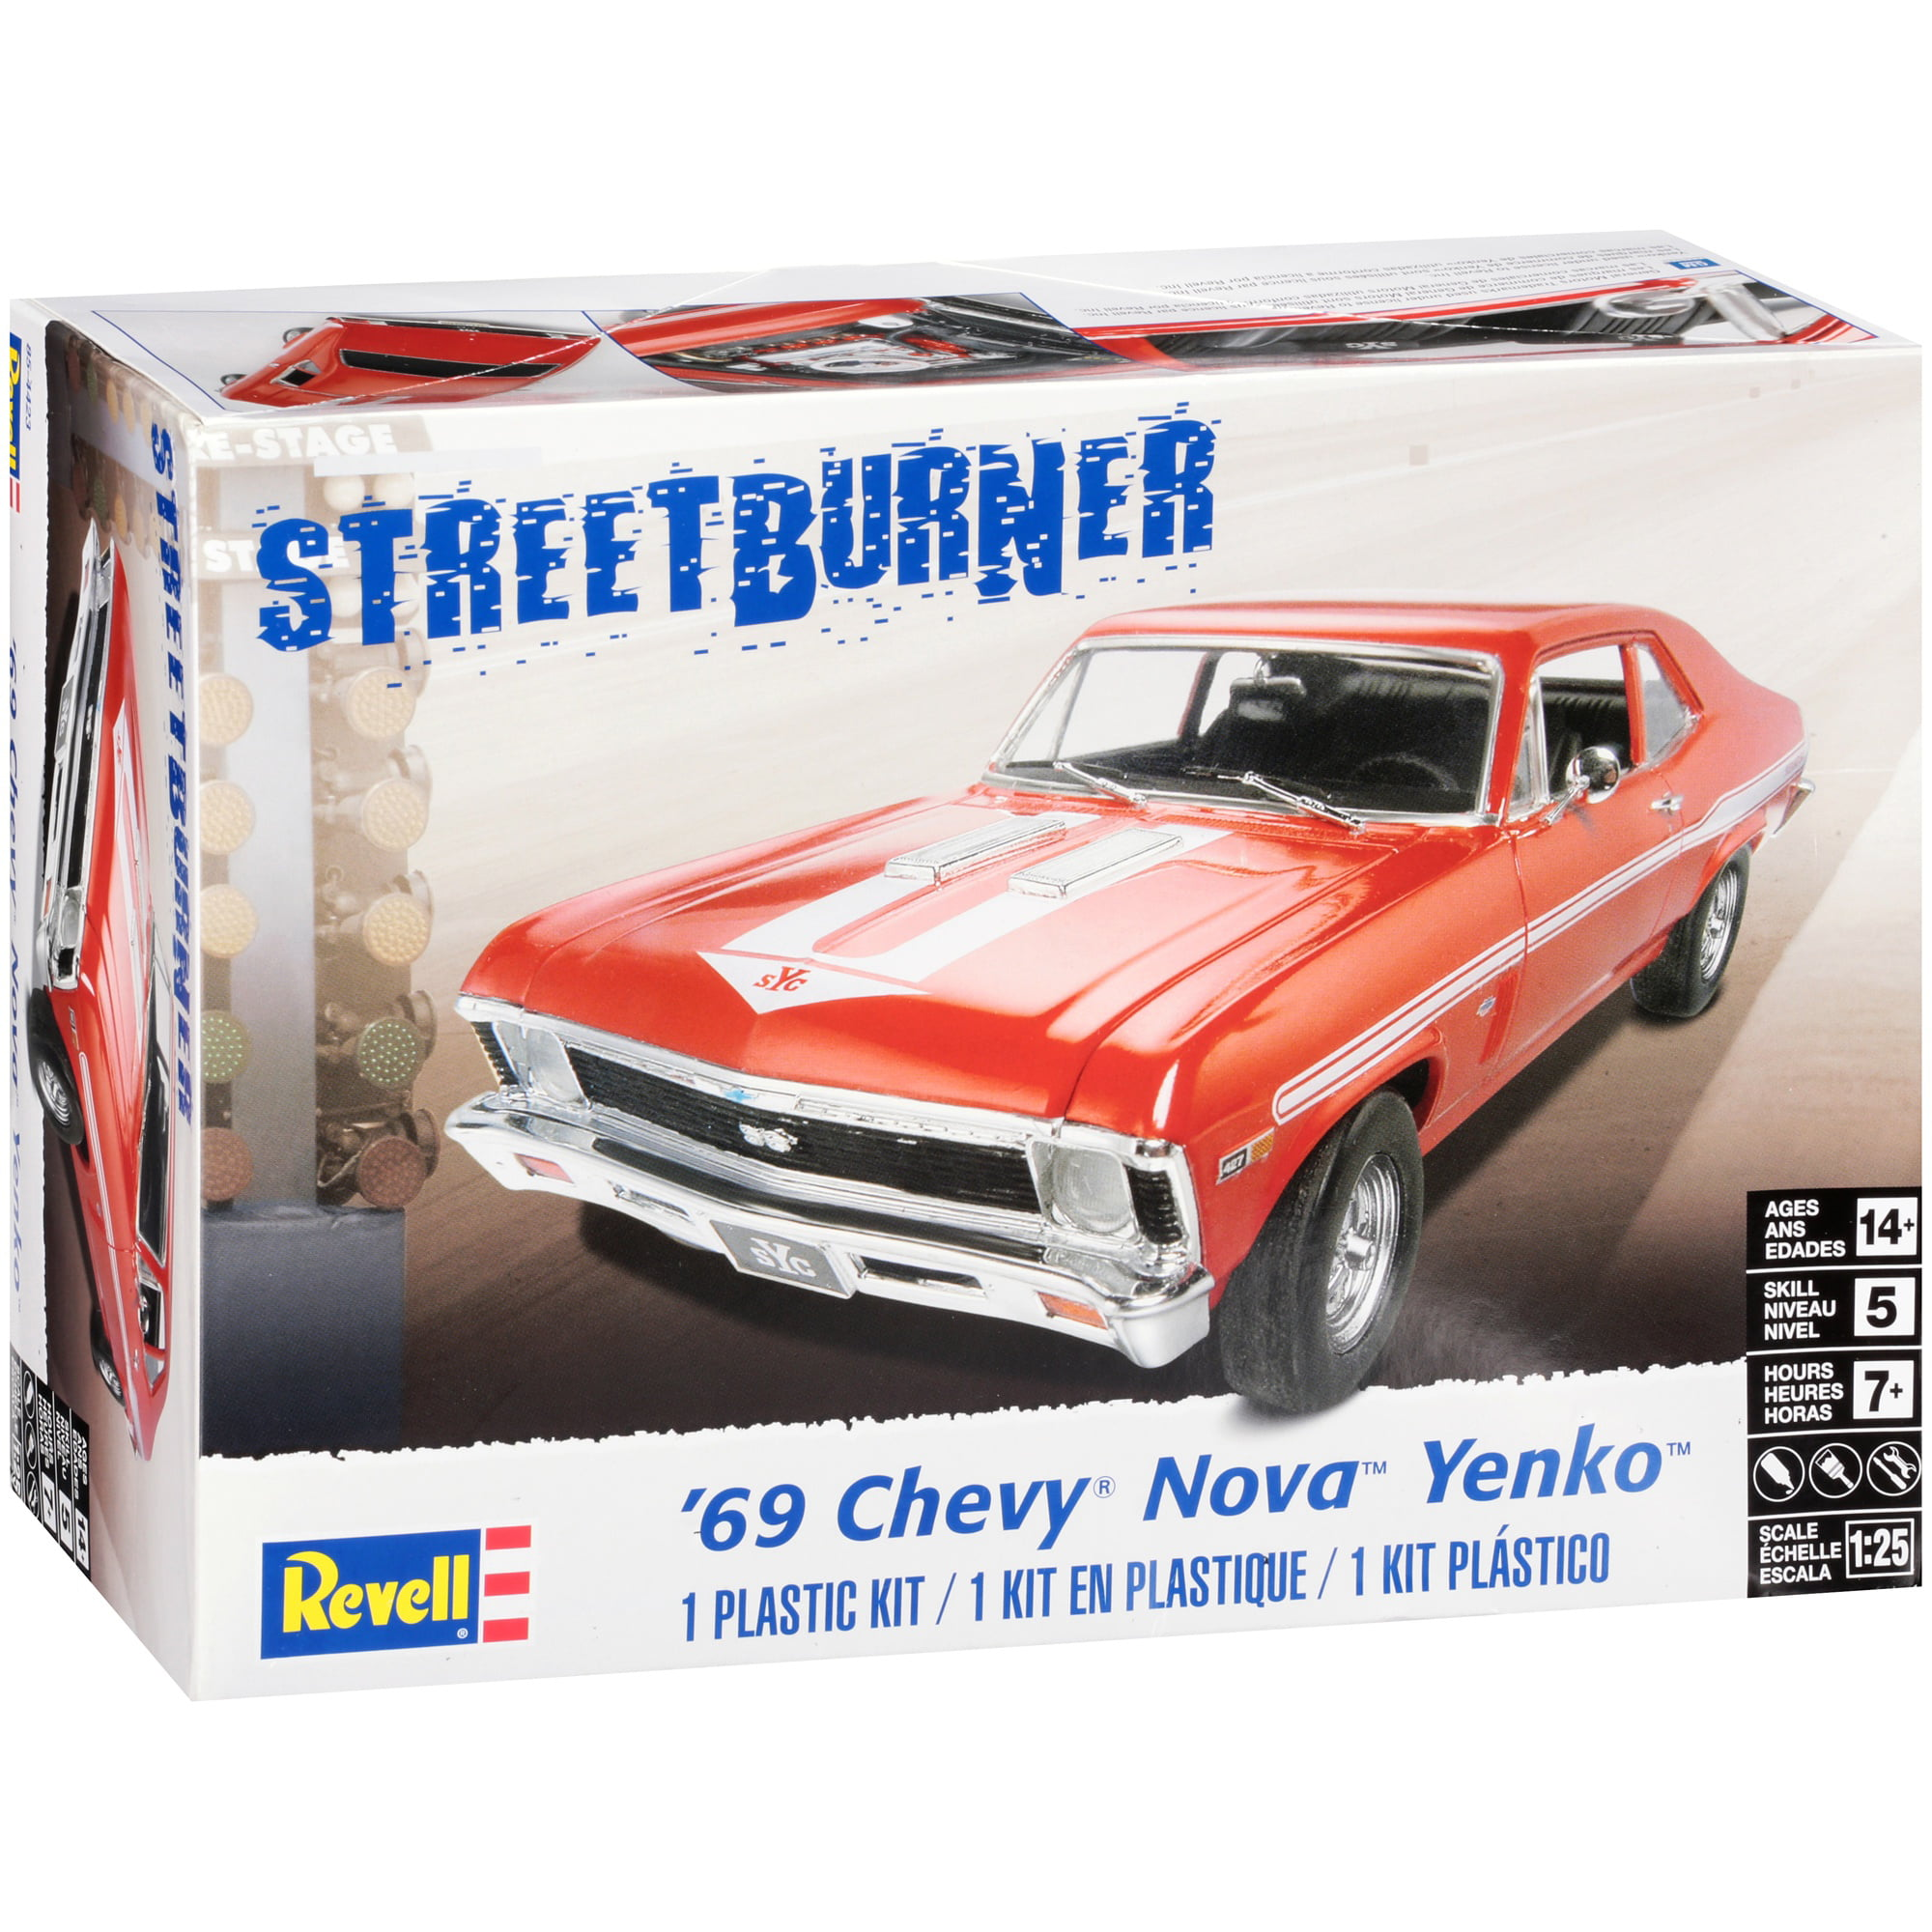 Revell Streetburner '69 Chevy Nova Yenko Model Kit 111 pc Box by Revell Inc.